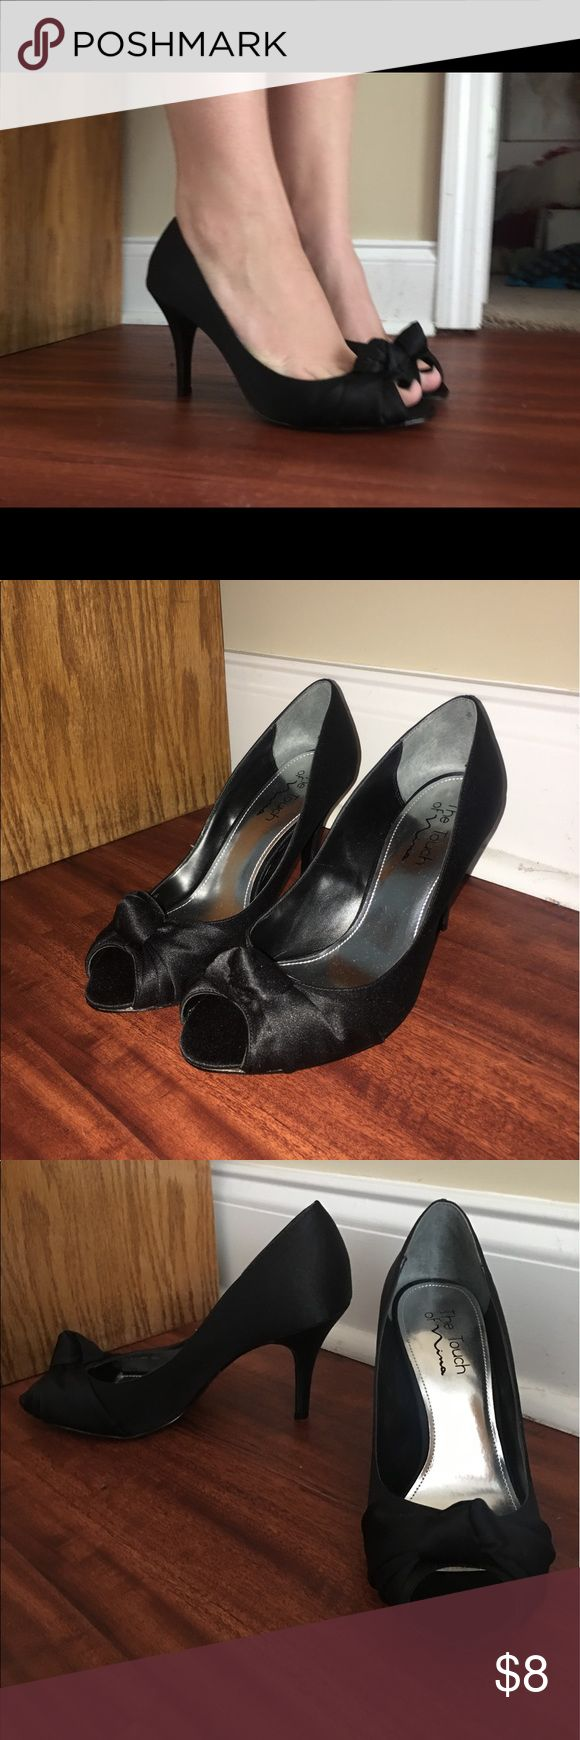 Black Heels!!!! Very cute black heels, very comfortable. Never worn but purchased used. No snags or weird spots. Size 7 1/2M. If you have any questions please ask me! Nina Shoes Heels